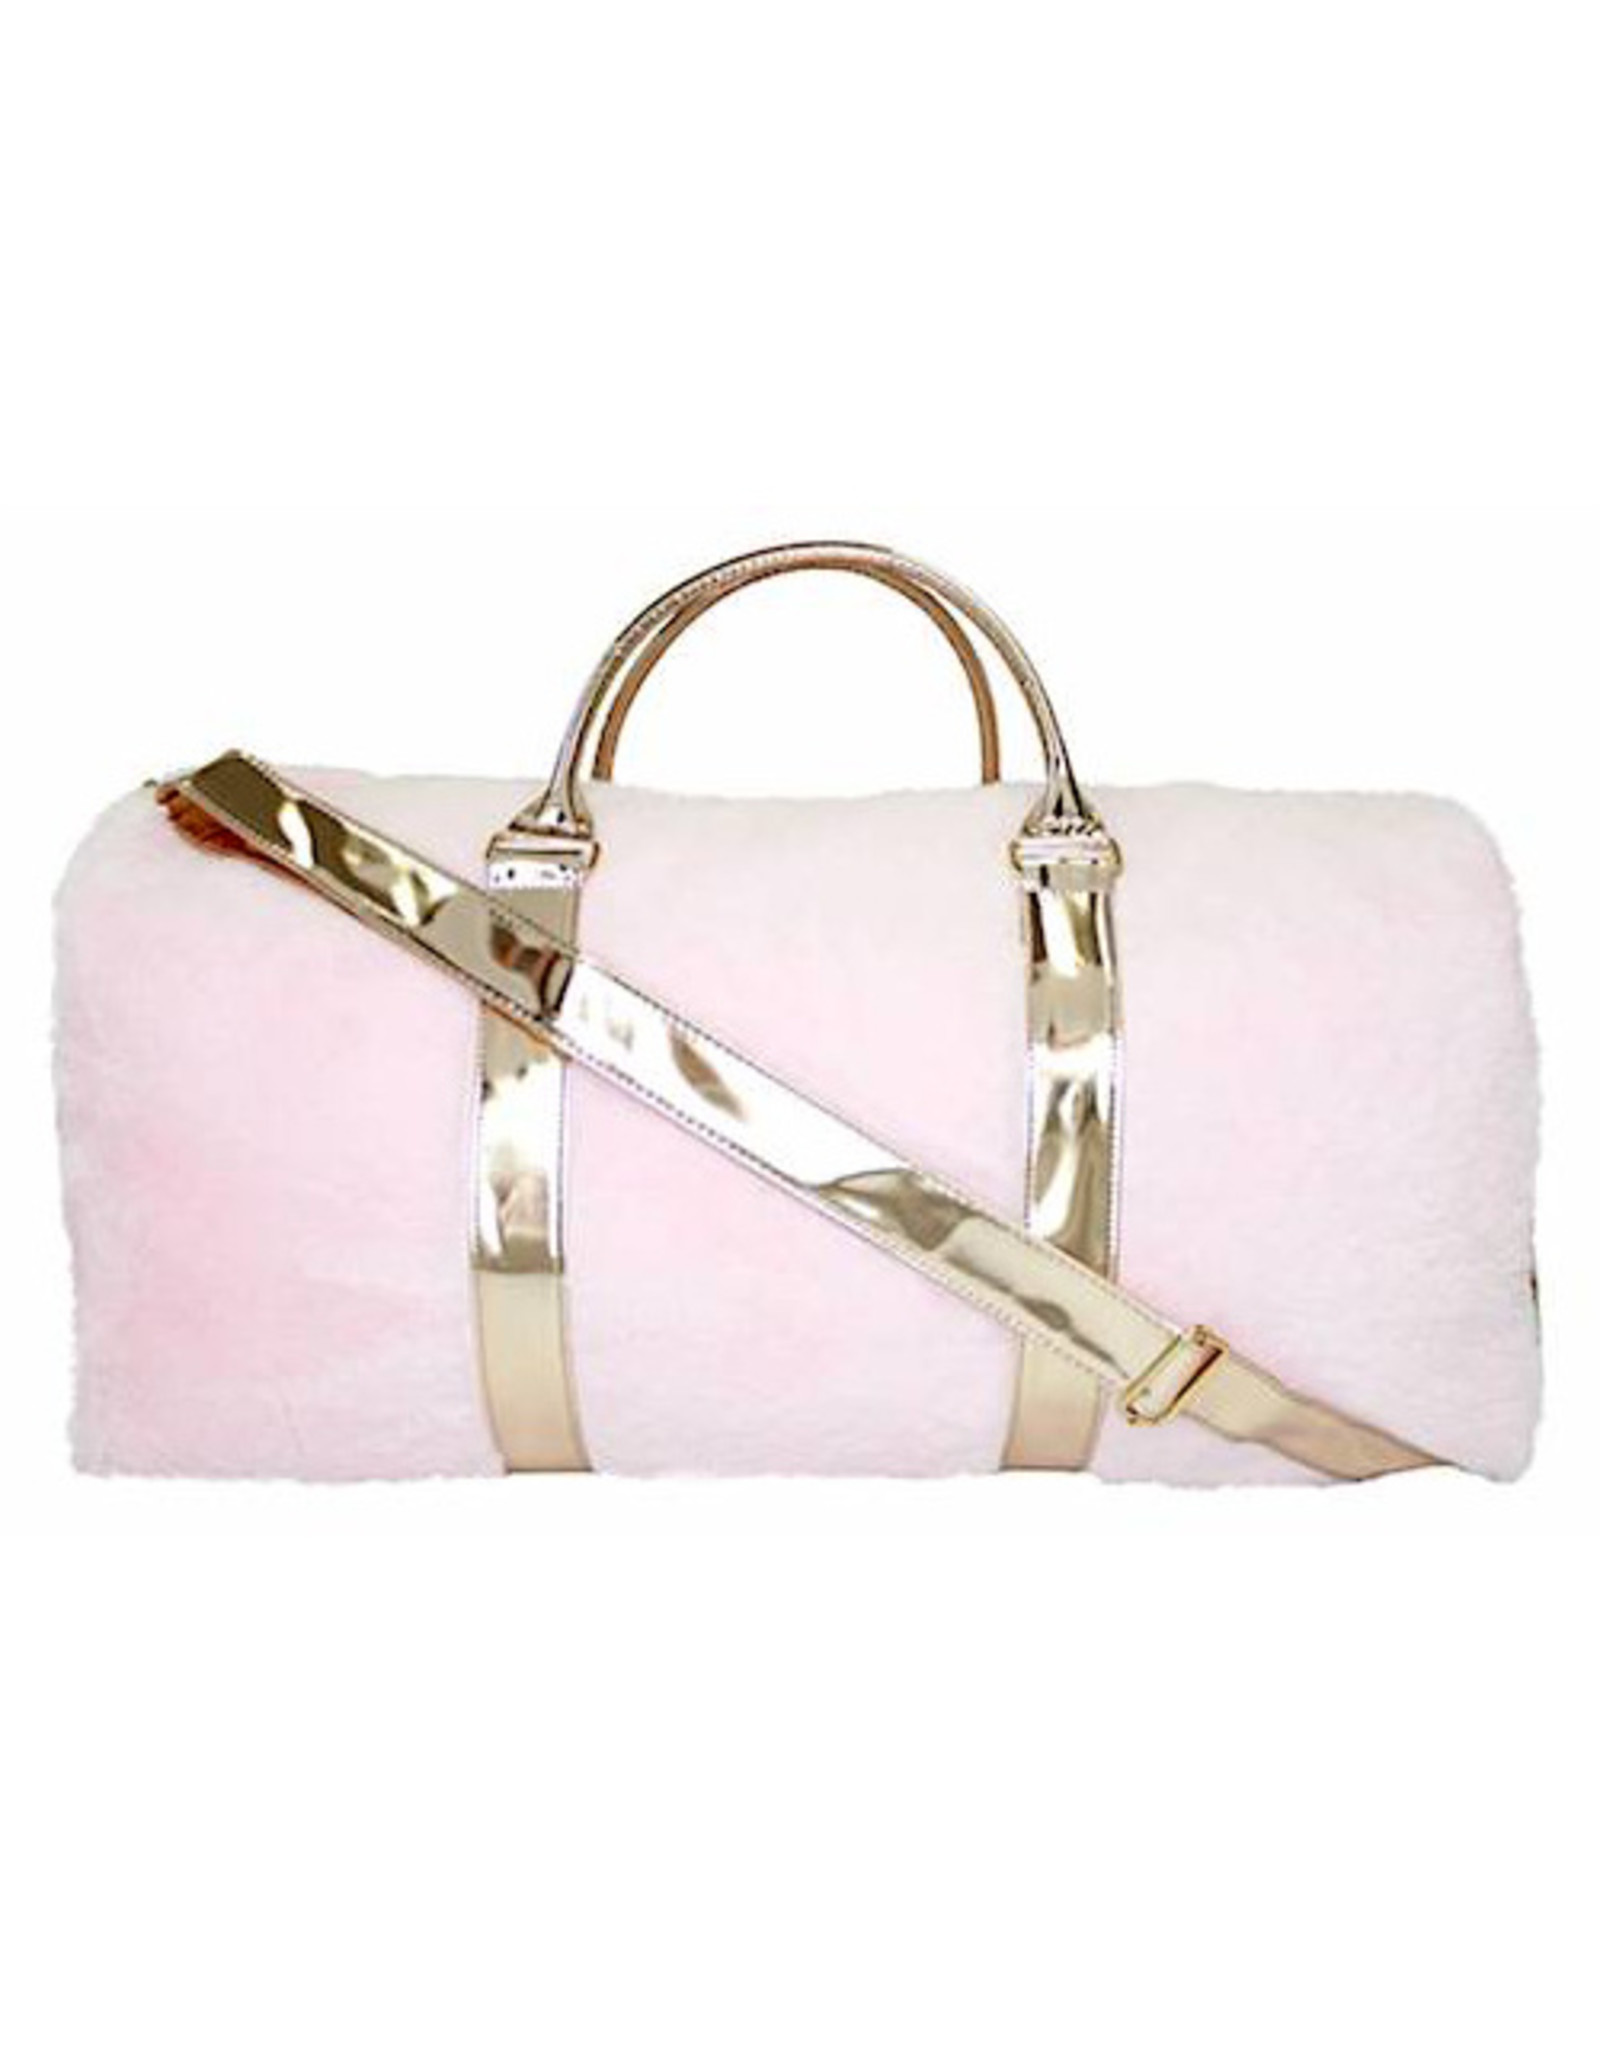 American Jewel Fur Travel Bag